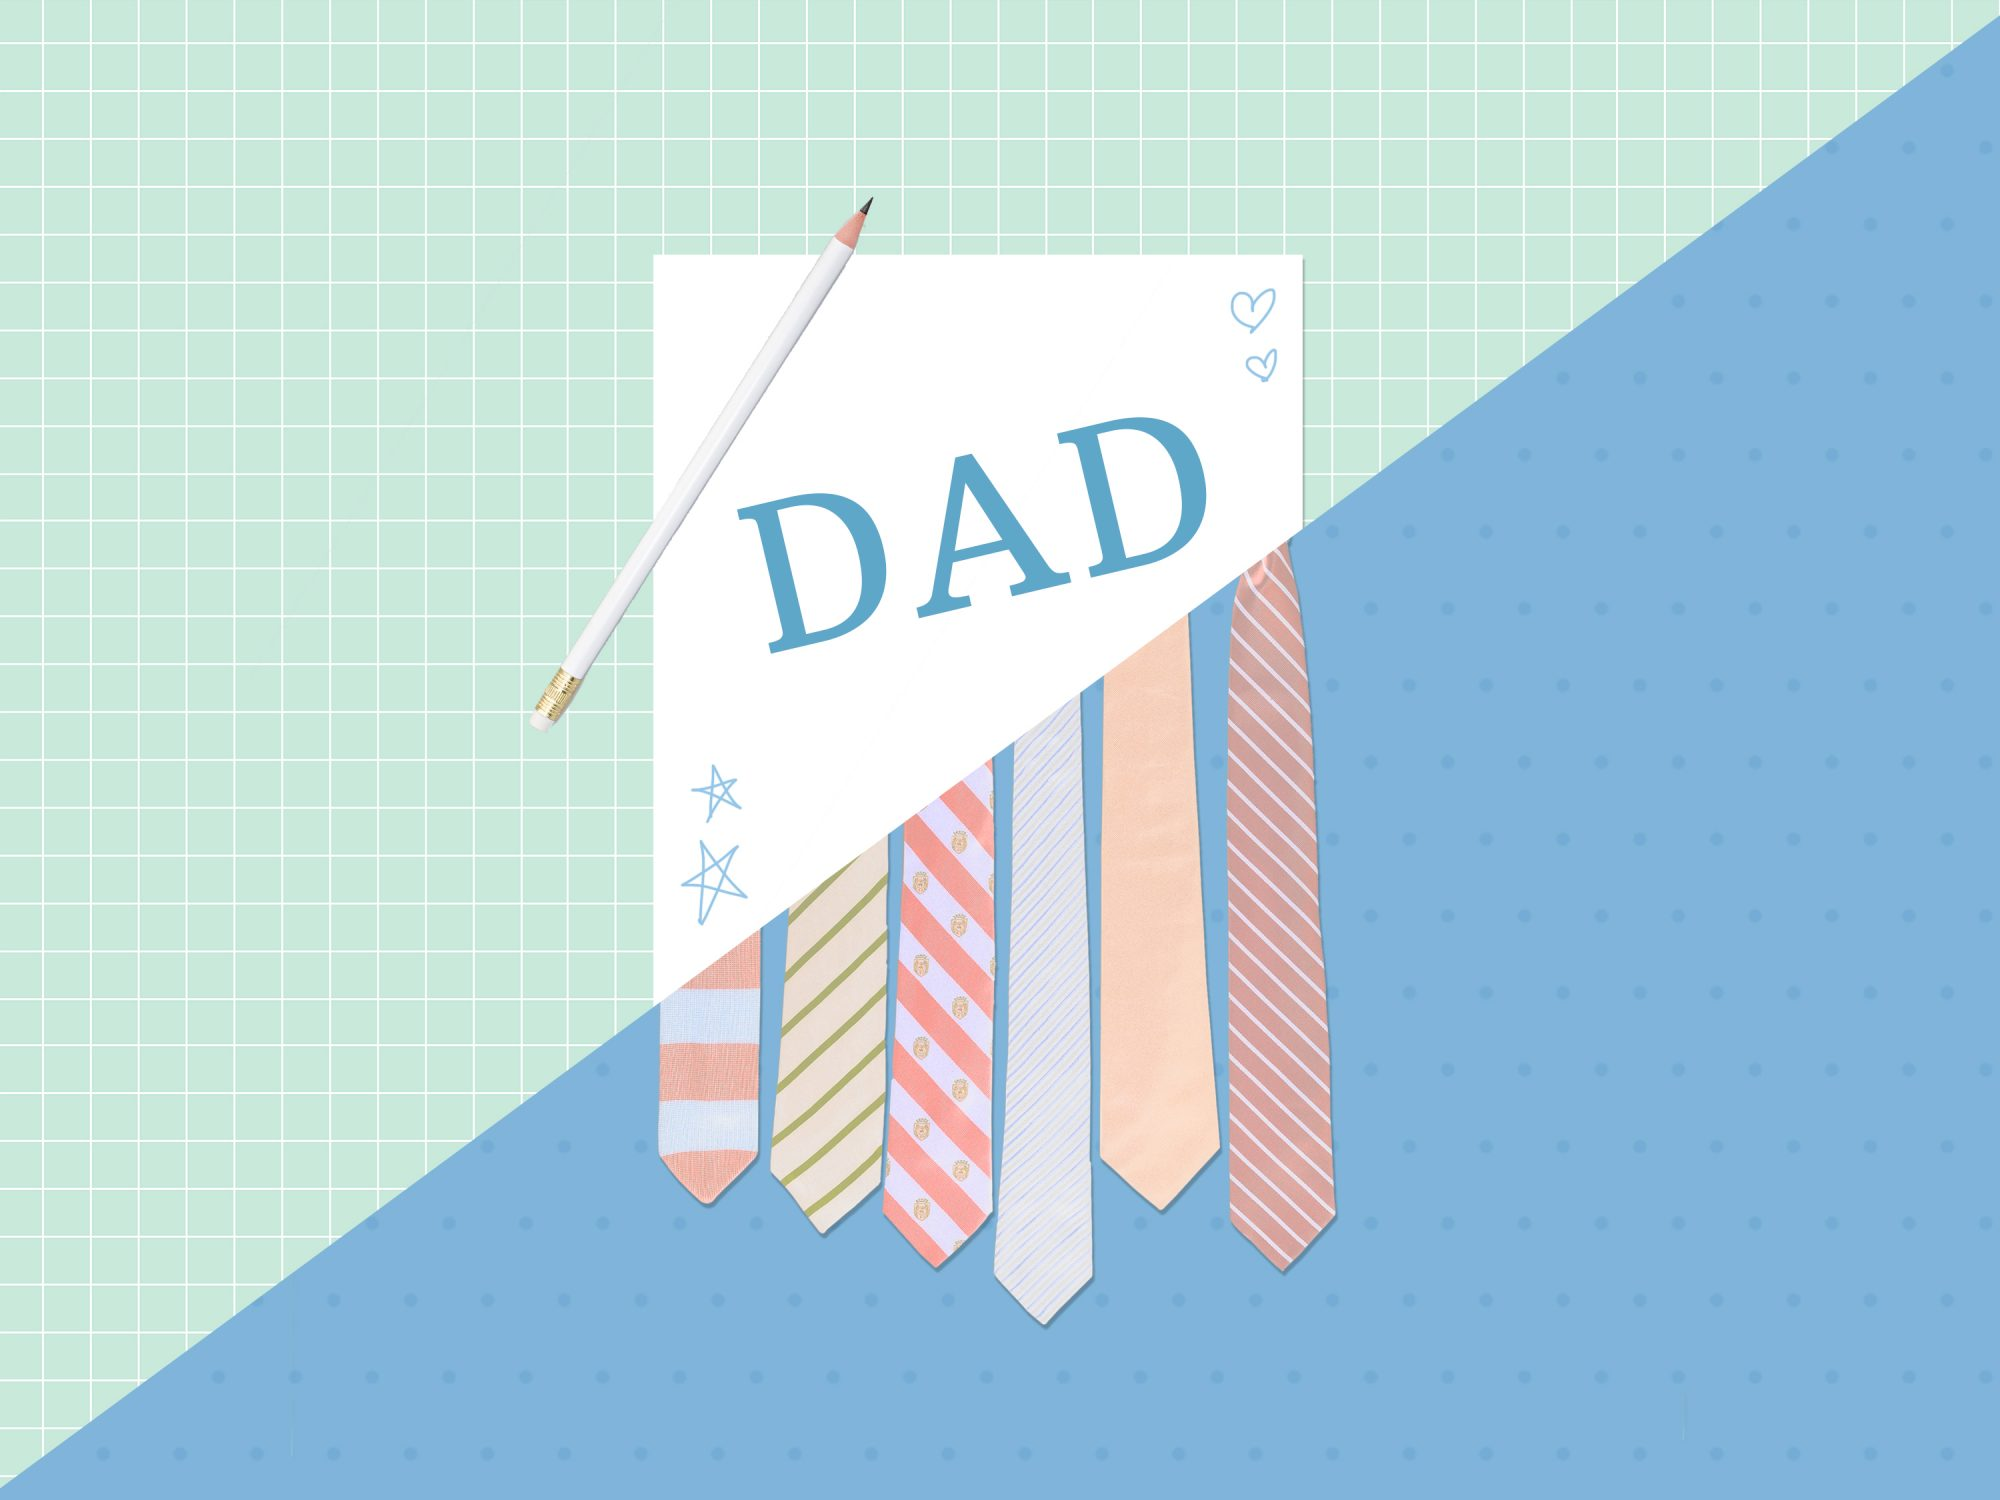 father's day quotes graphic with ties